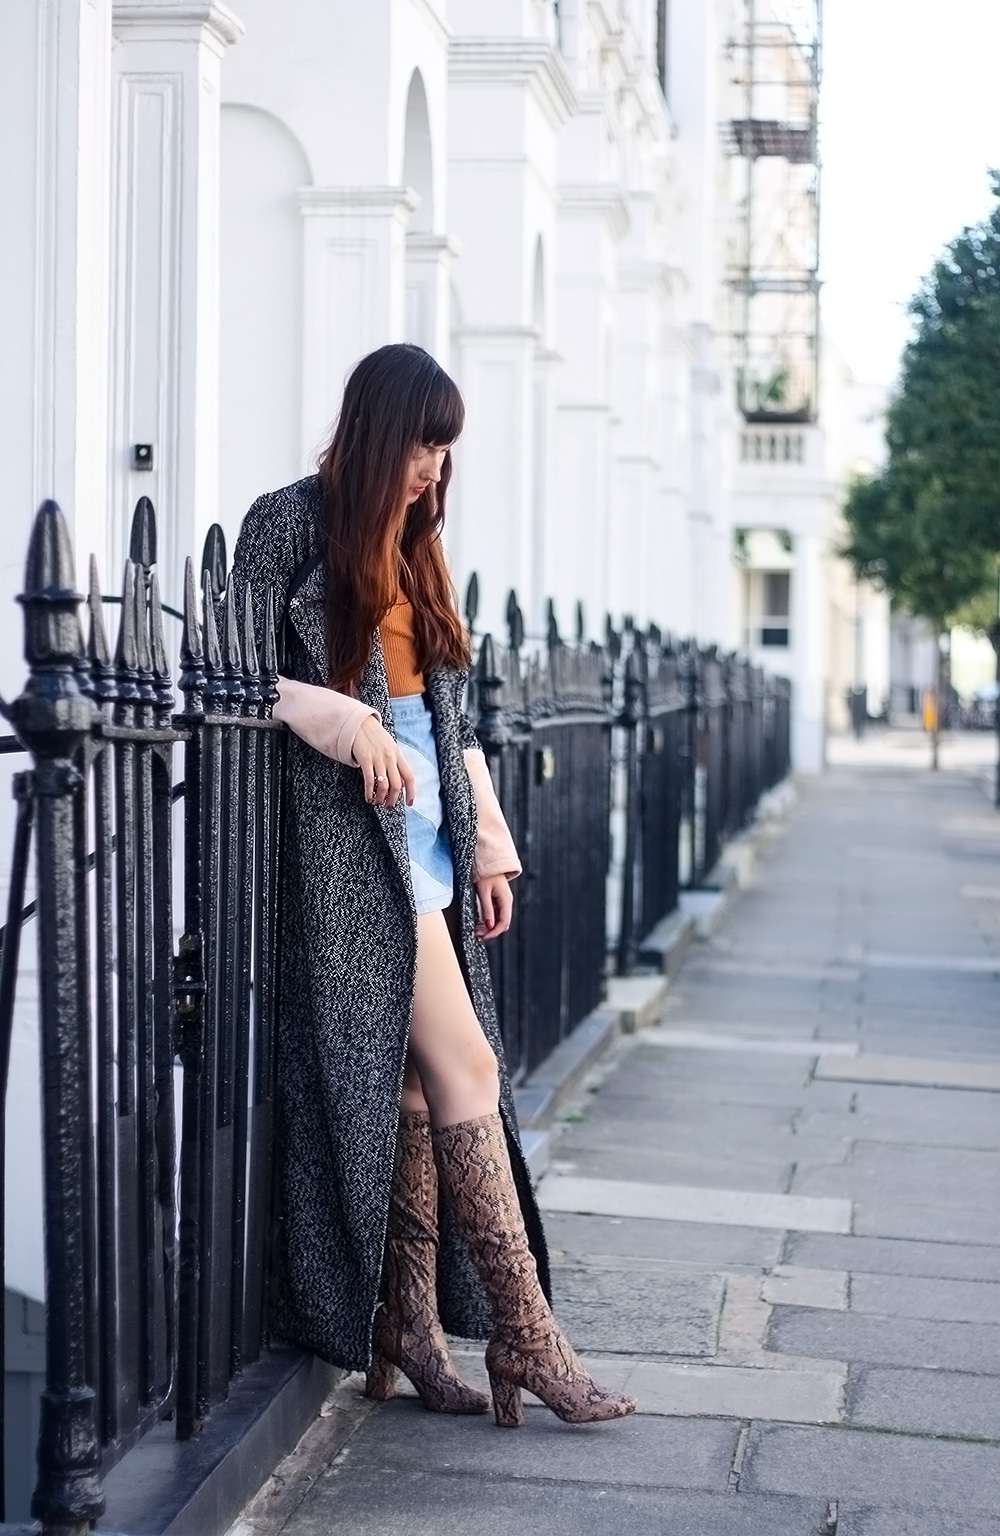 I like a girl with short skirt and long jacket | Global trend ...